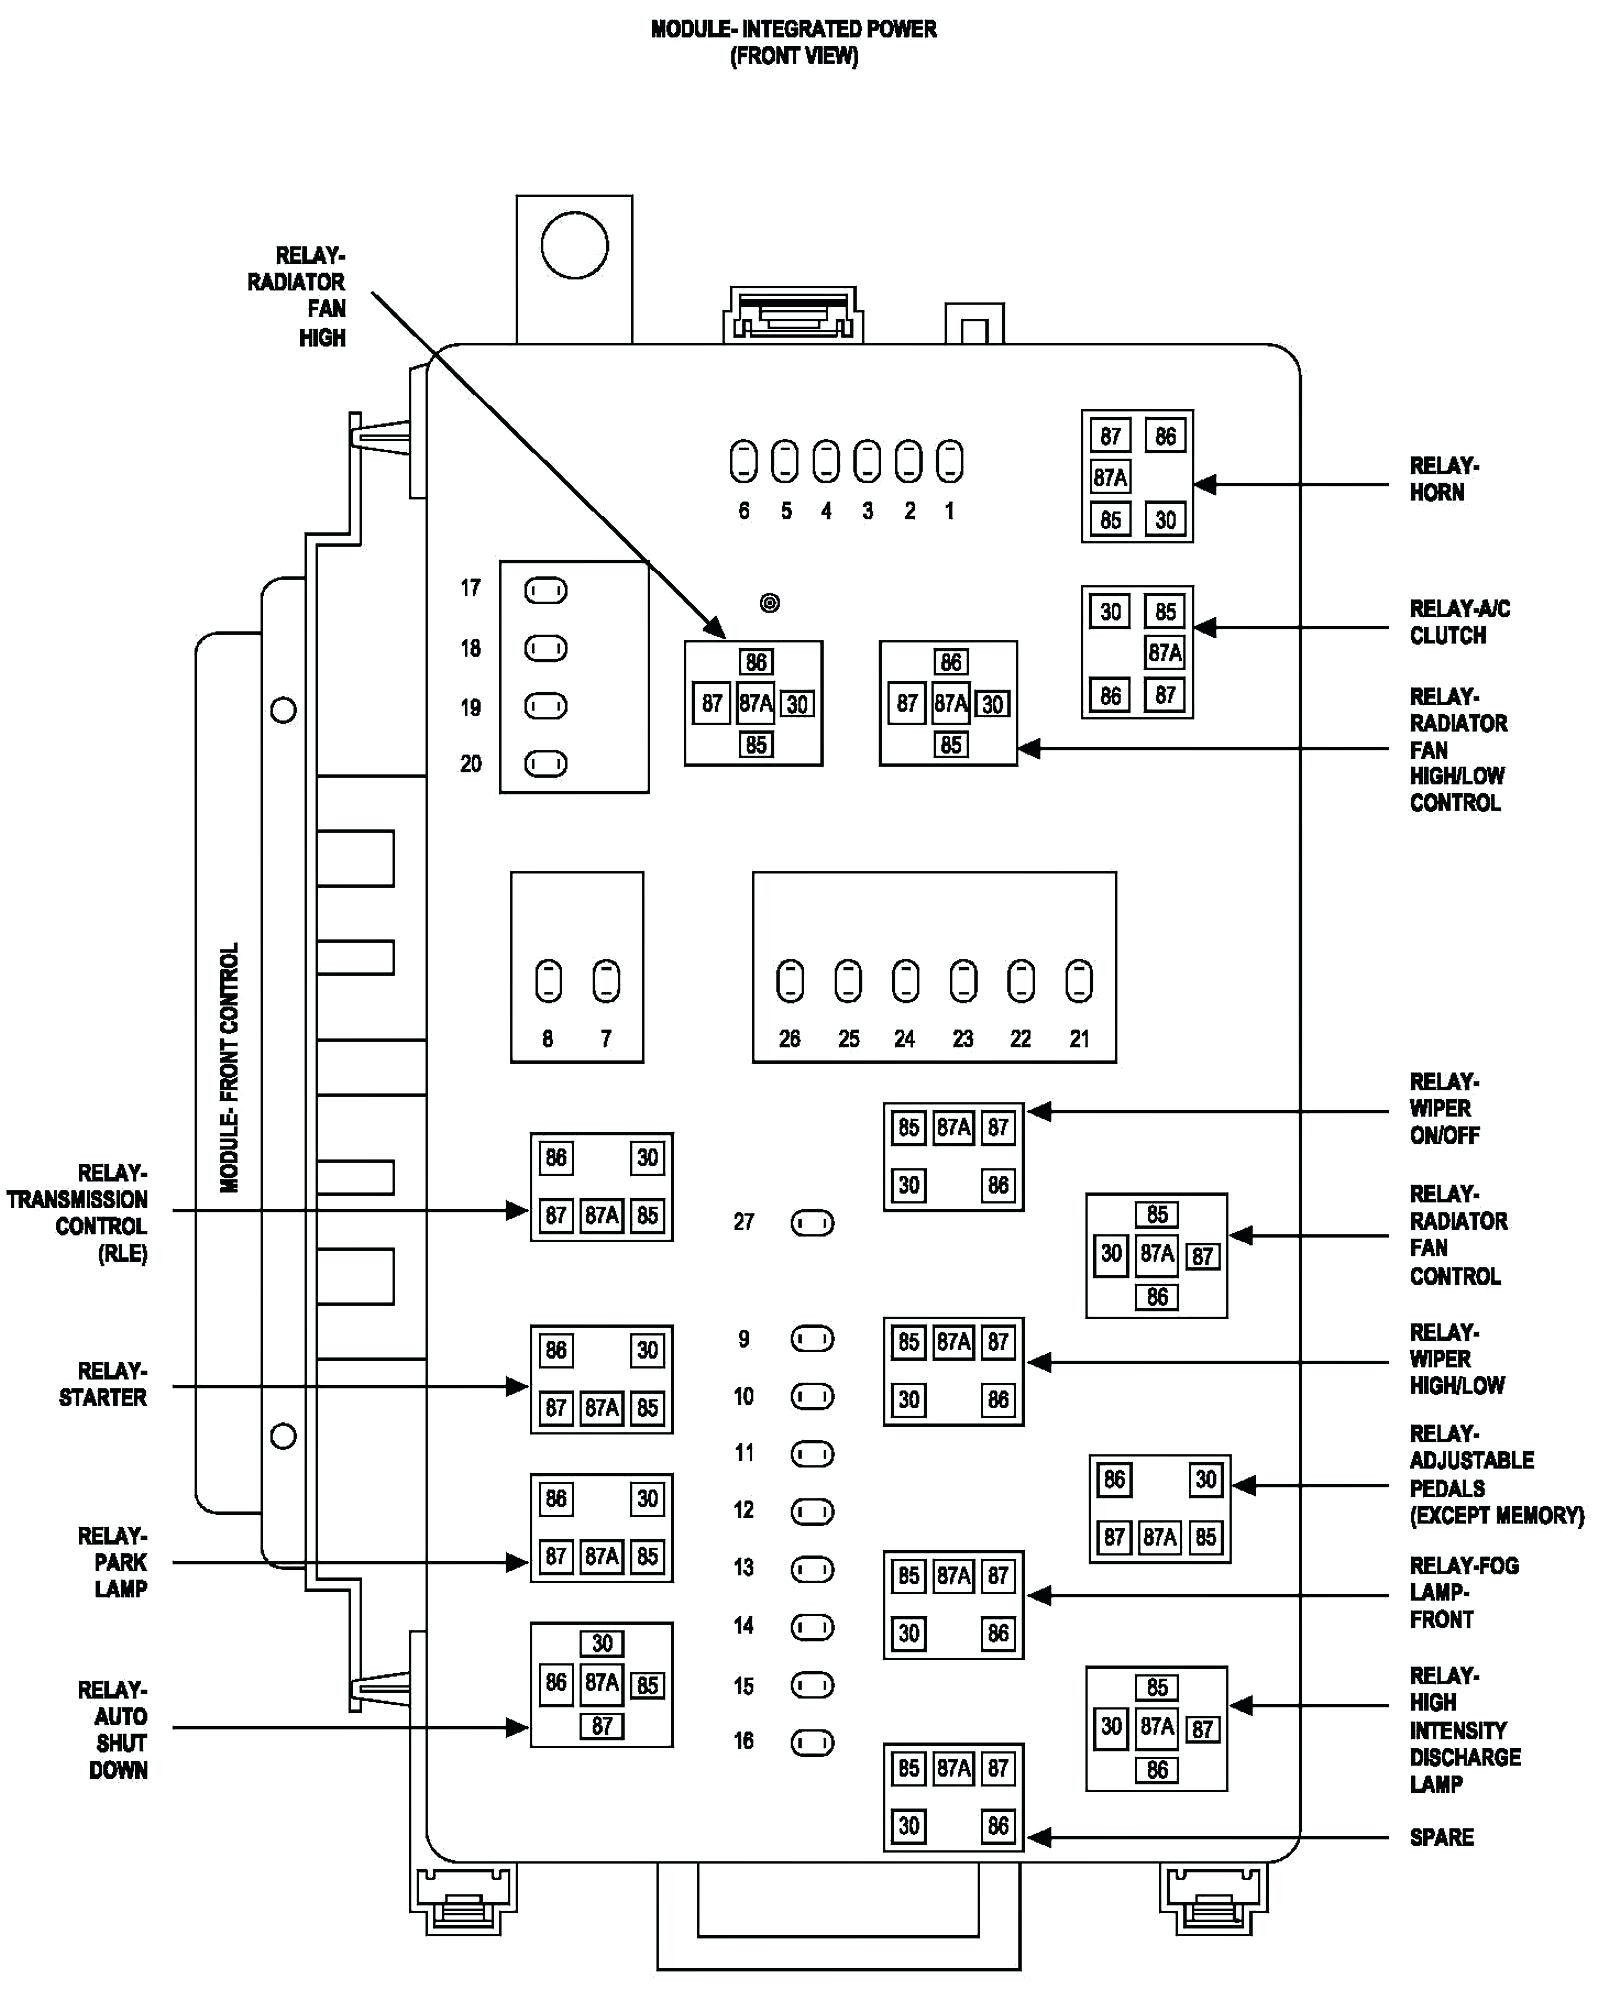 Fuse Panel Diagram For Dodge Charger